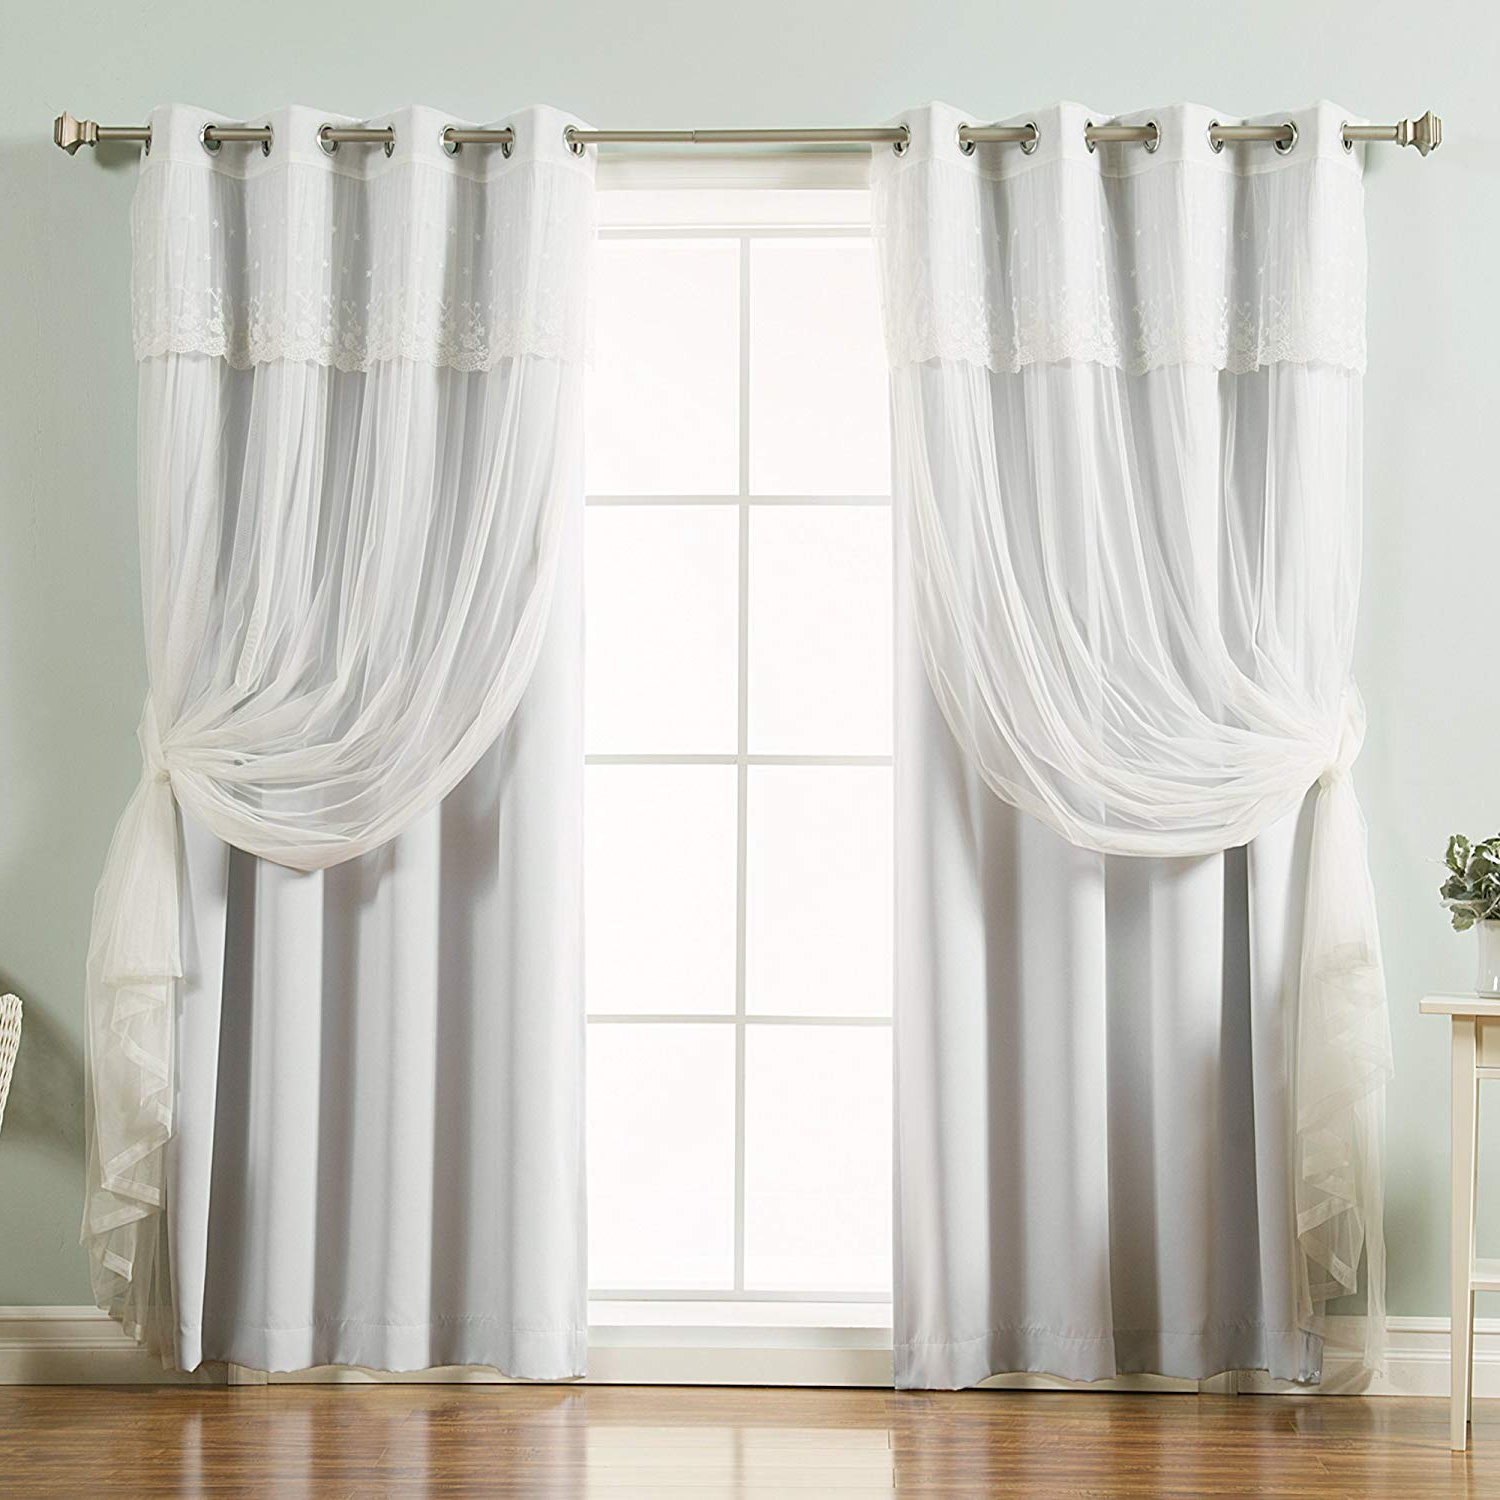 "Best Home Fashion Mix & Match Tulle Sheer With Attached Valance & Solid Blackout Curtain Set – Stainless Steel Nickel Grommet Top – Vapor – 52""w X Within Recent Tulle Sheer With Attached Valance And Blackout 4 Piece Curtain Panel Pairs (View 7 of 20)"